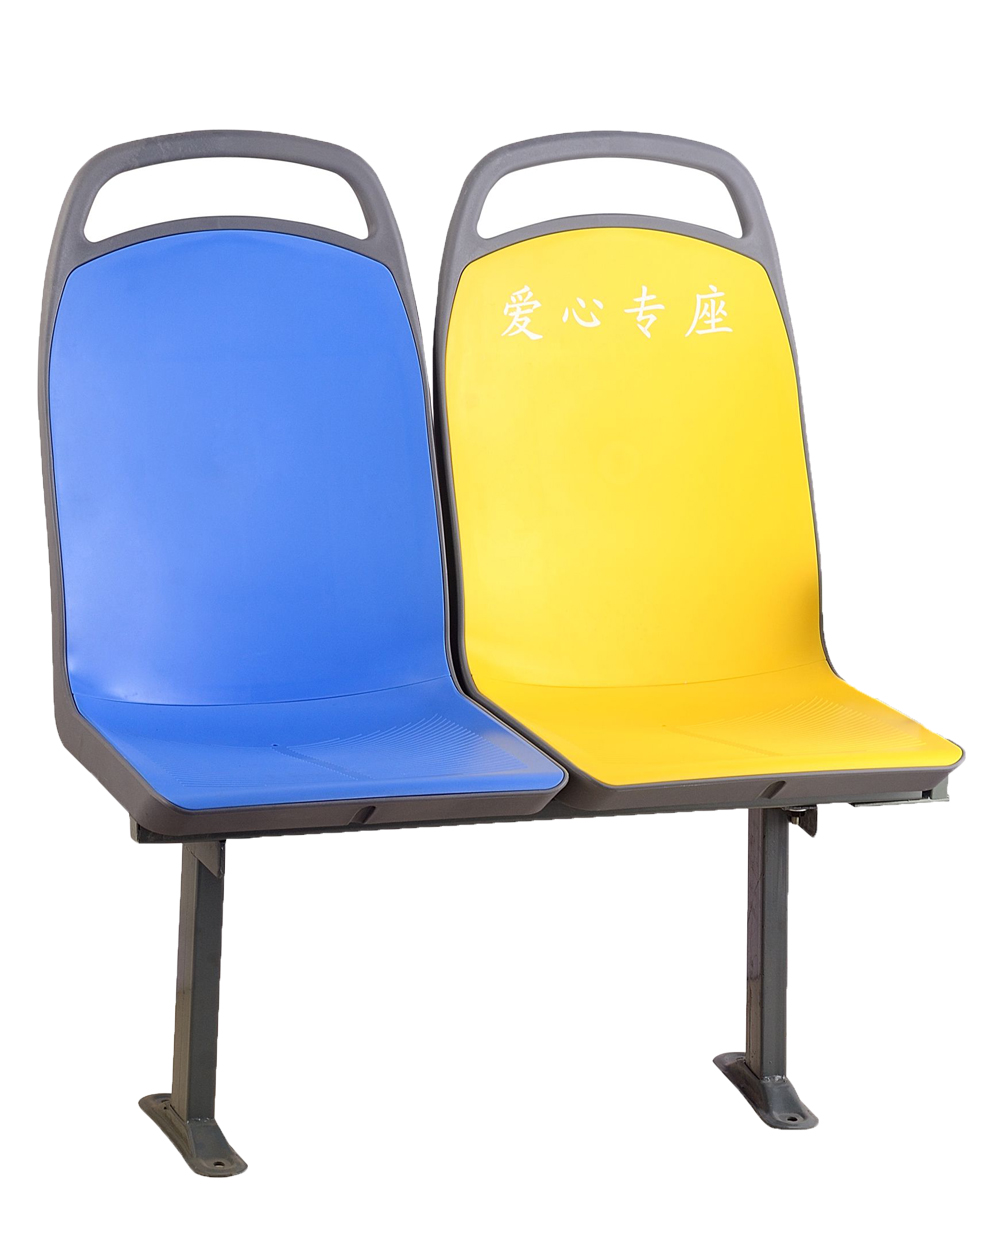 injection molding bus seat